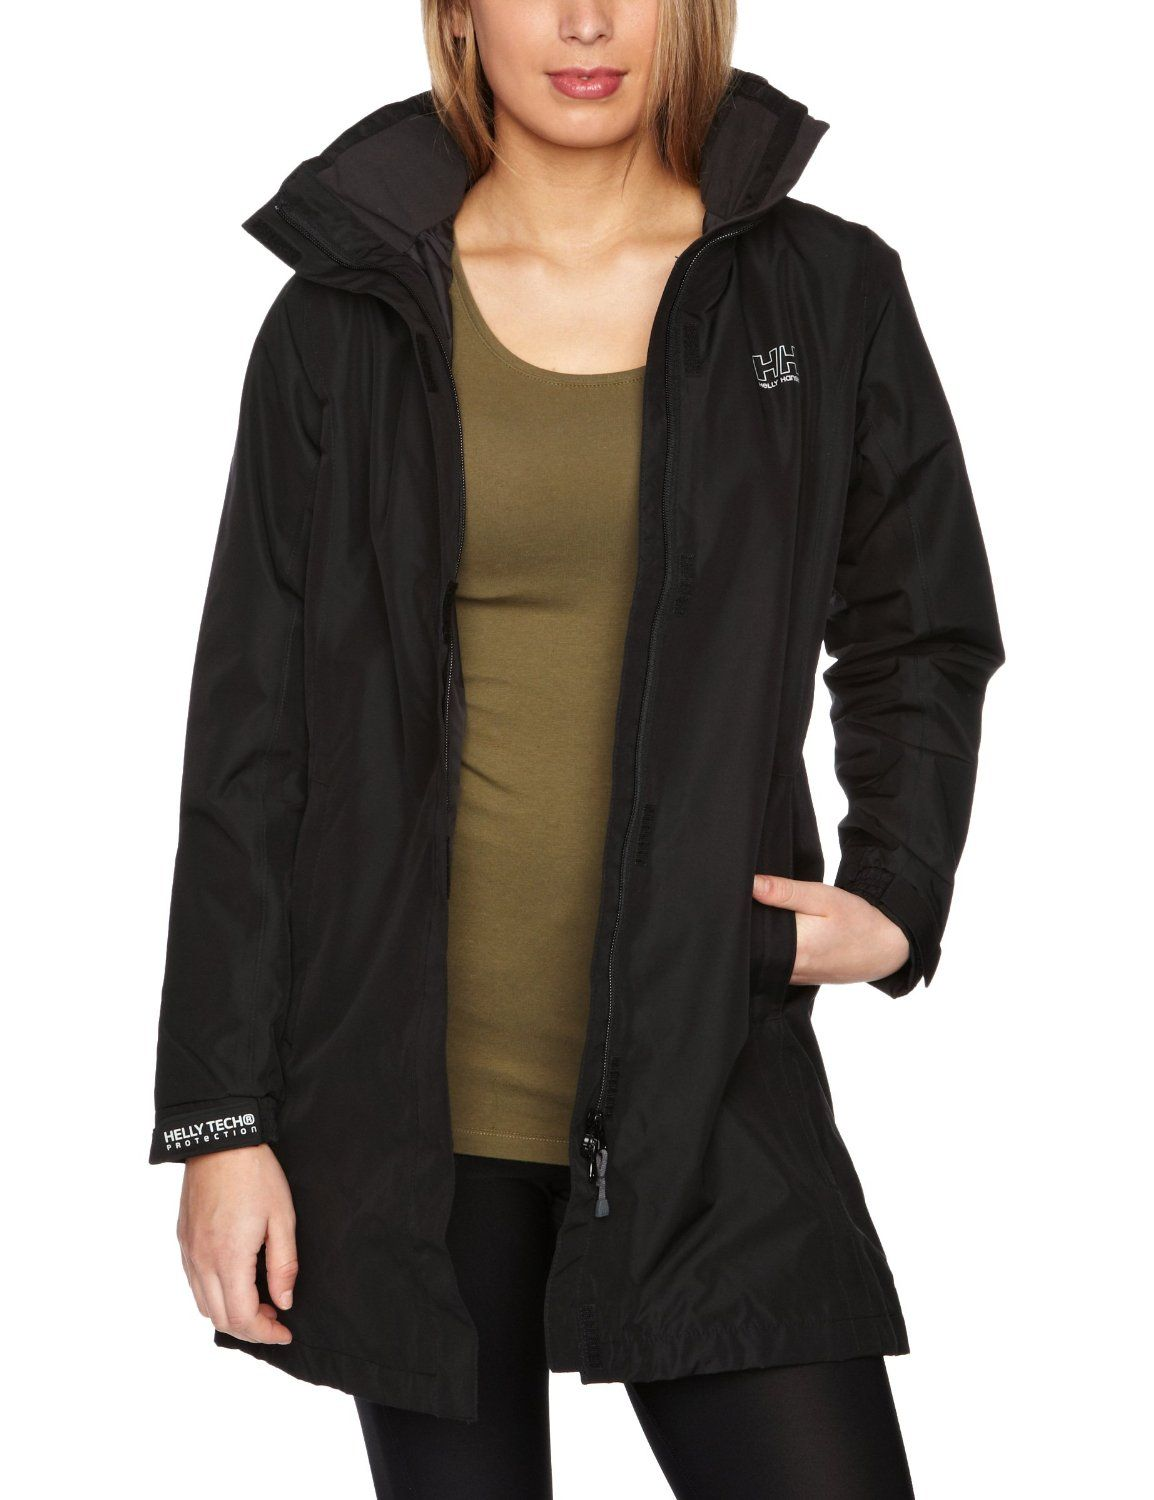 Navy CHECK FOR SIZE Helly Hansen Women/'s New Aden Jacket